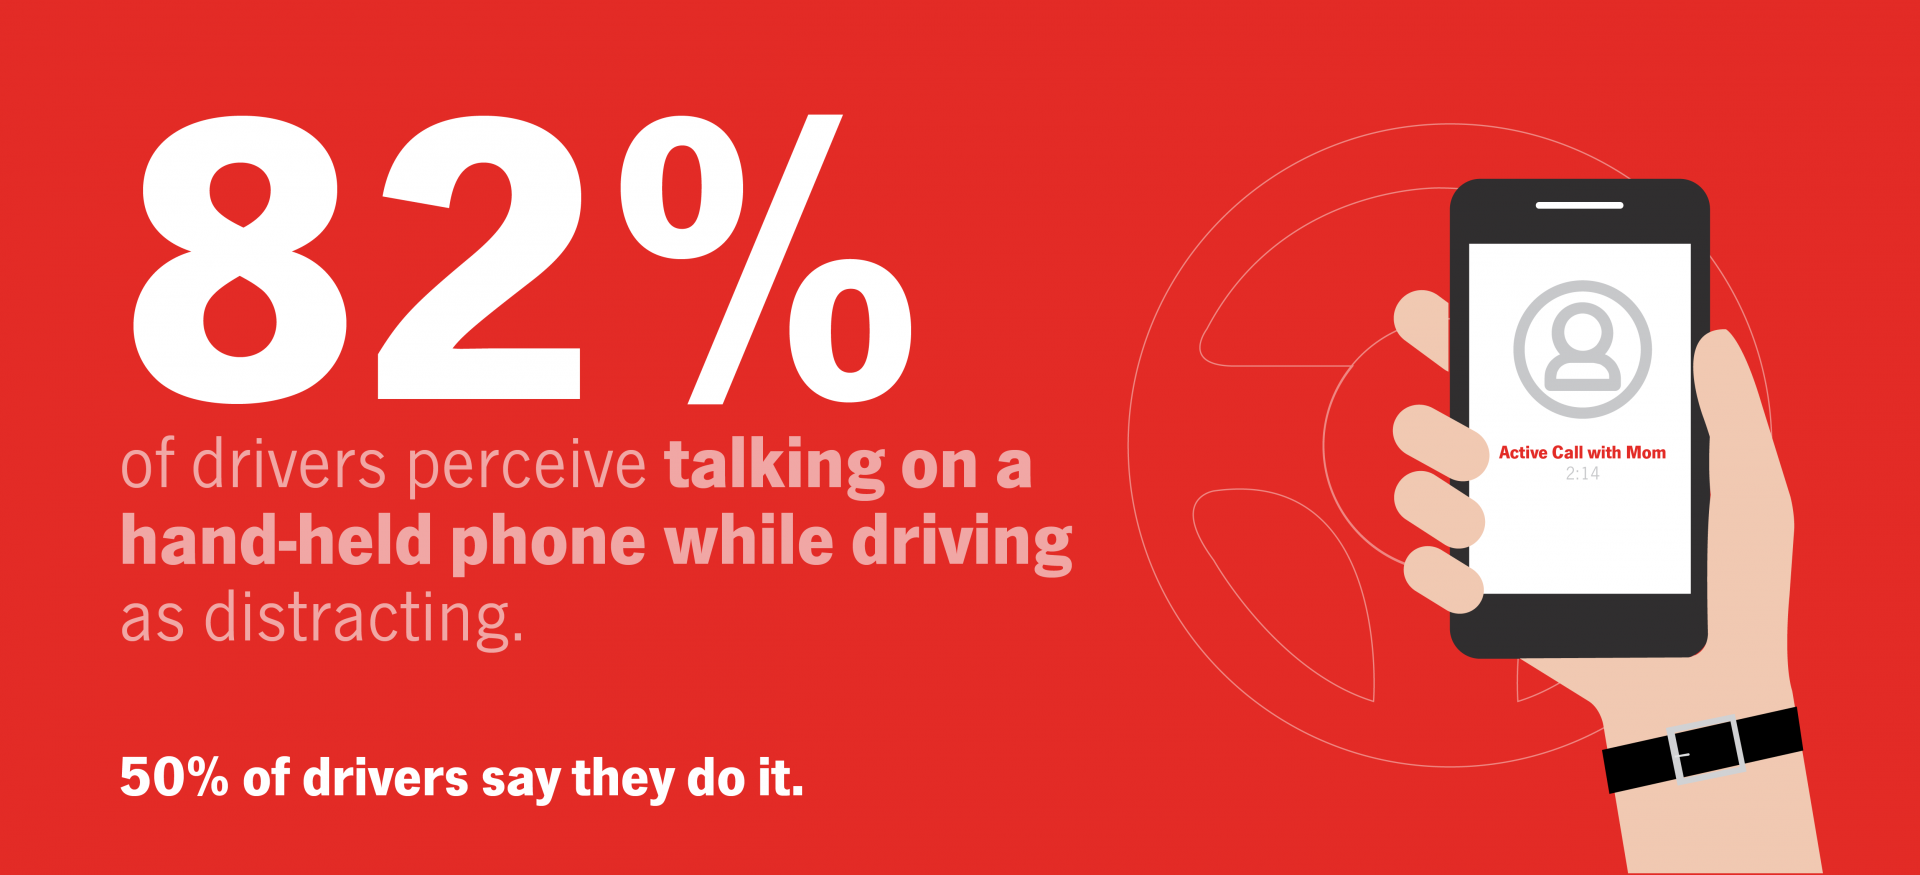 Distracted Driving - Talking on Phone